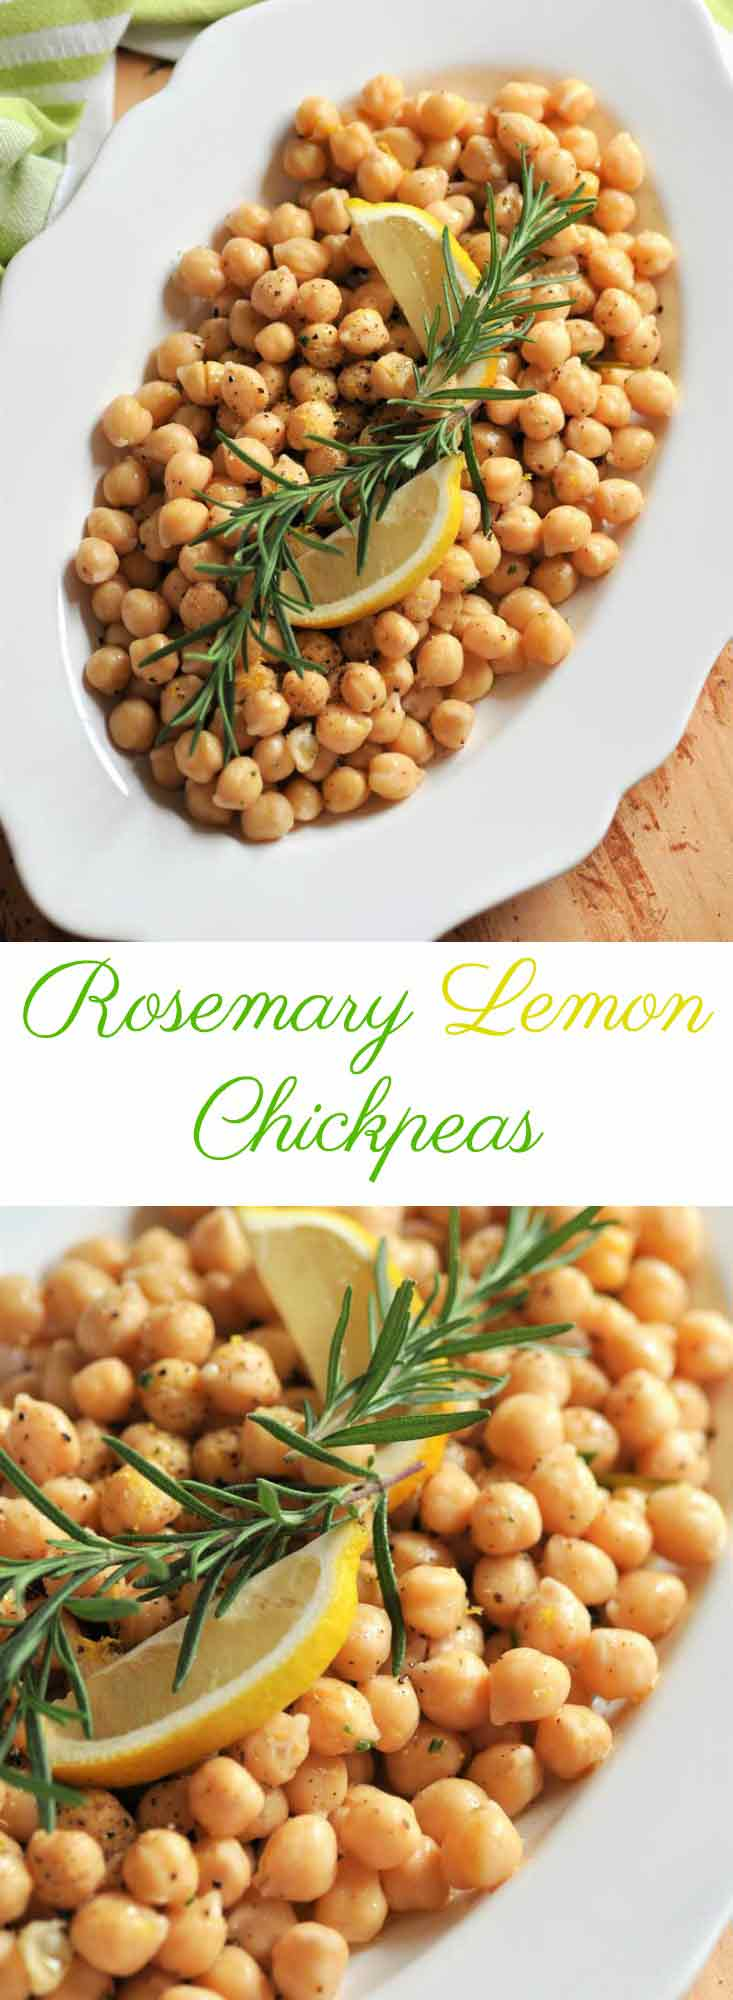 Rosemary and lemon chickpeas from scratch are so delicious! Eat them as a side or as a meal.